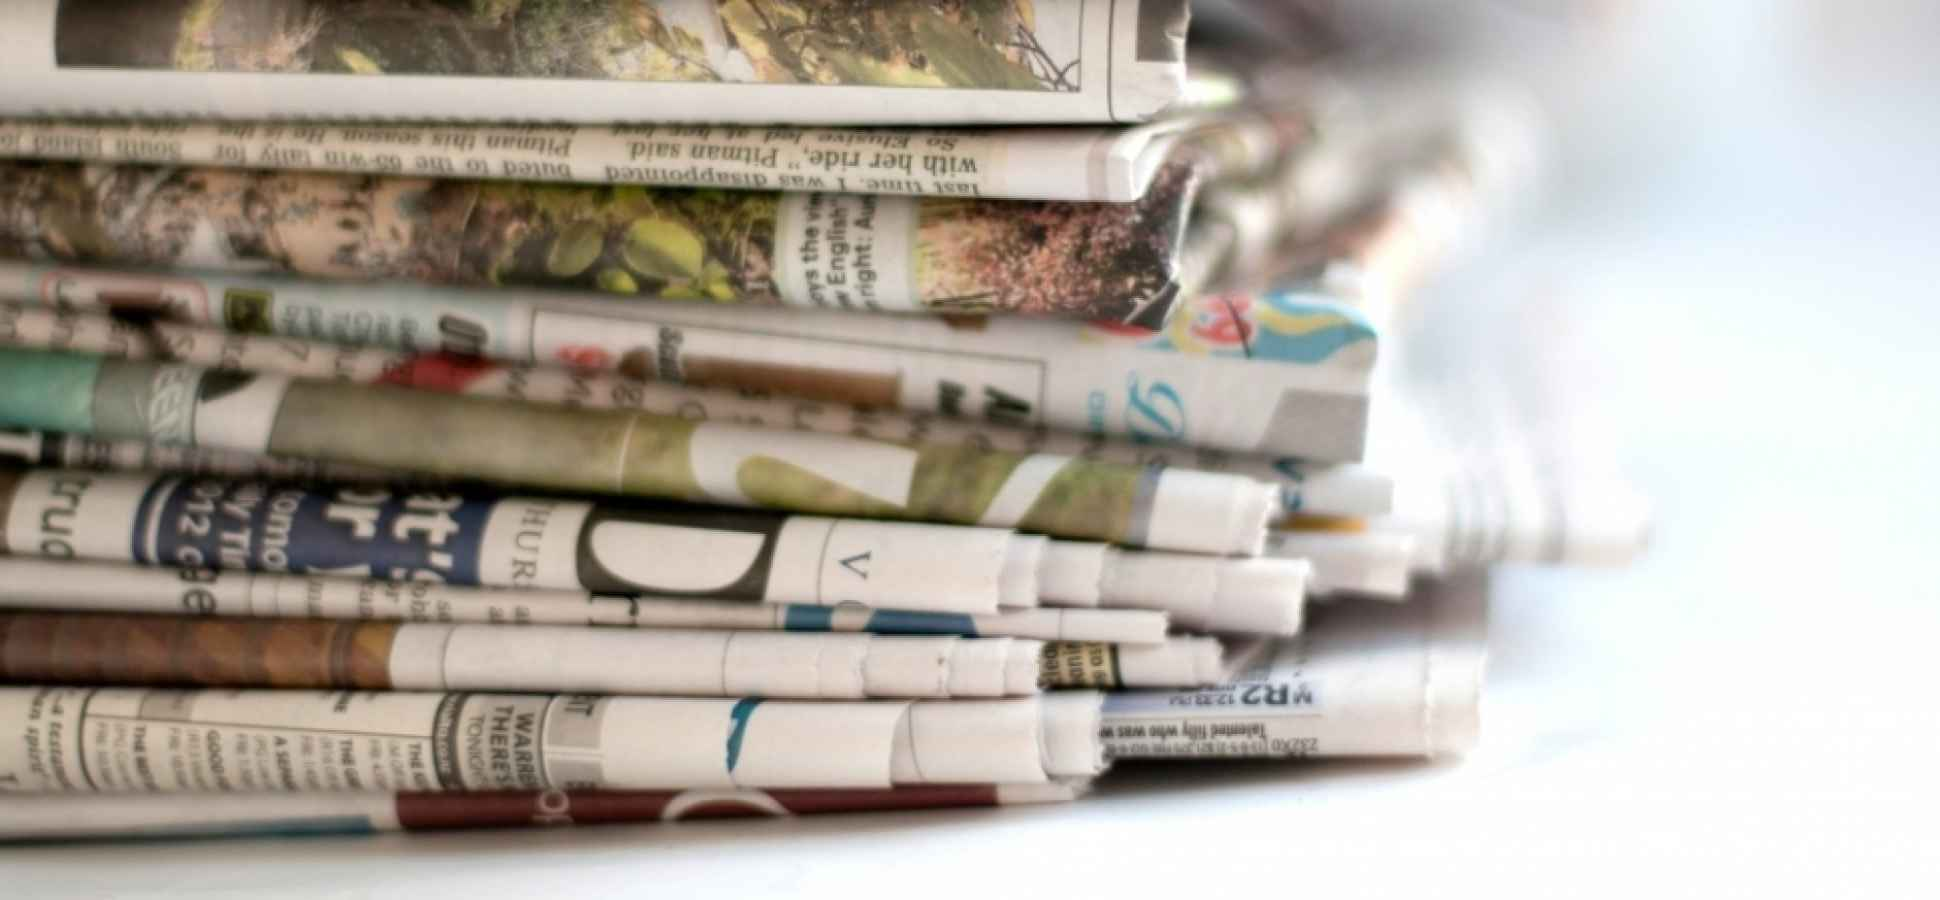 5 Ways to Increase Productivity by Going Paperless